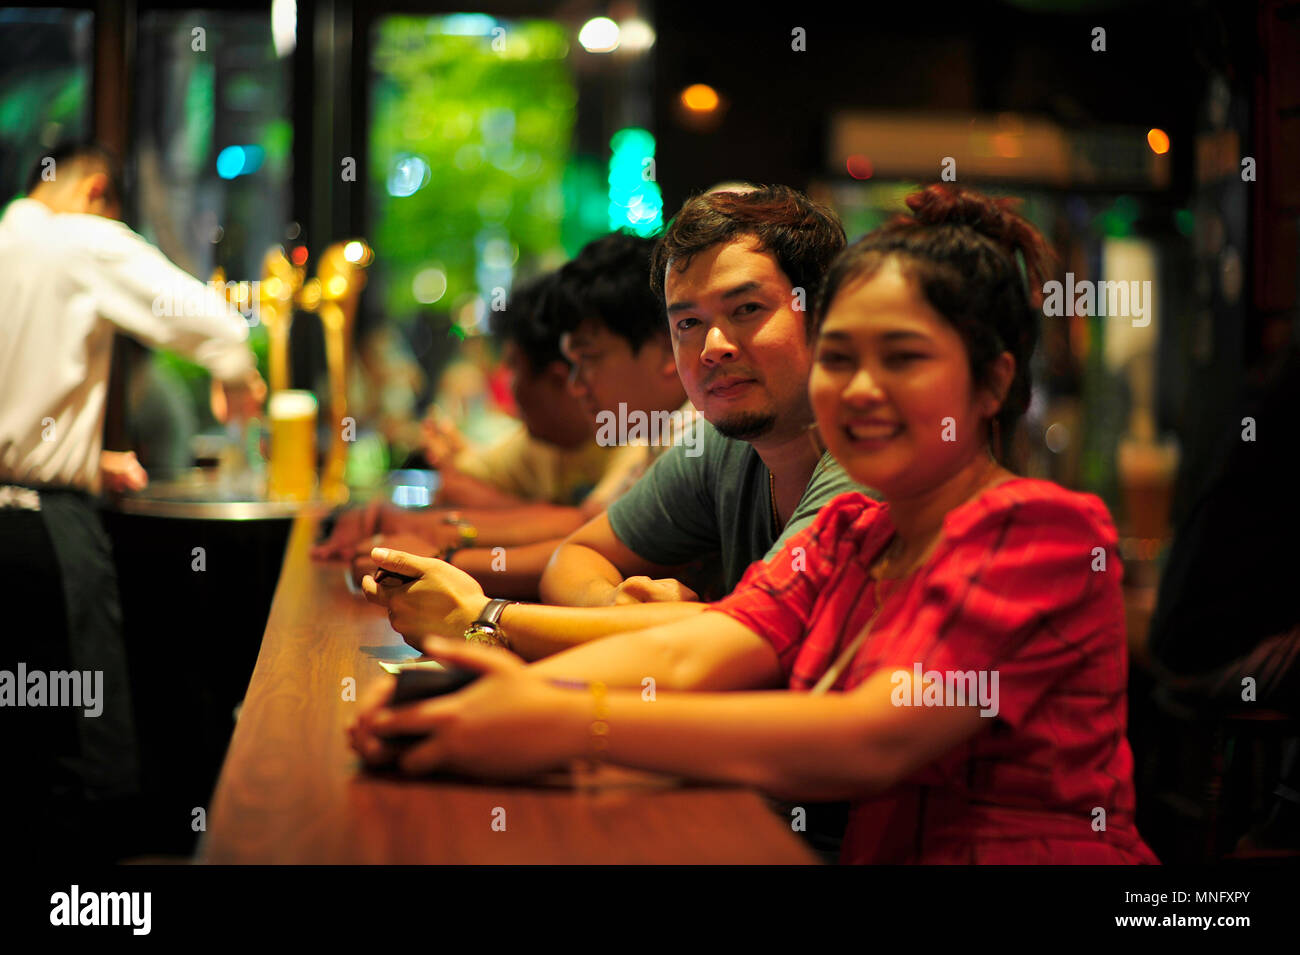 Friends waiting at bar for their beers, Hops Brew House Pattaya Thailand - Stock Image